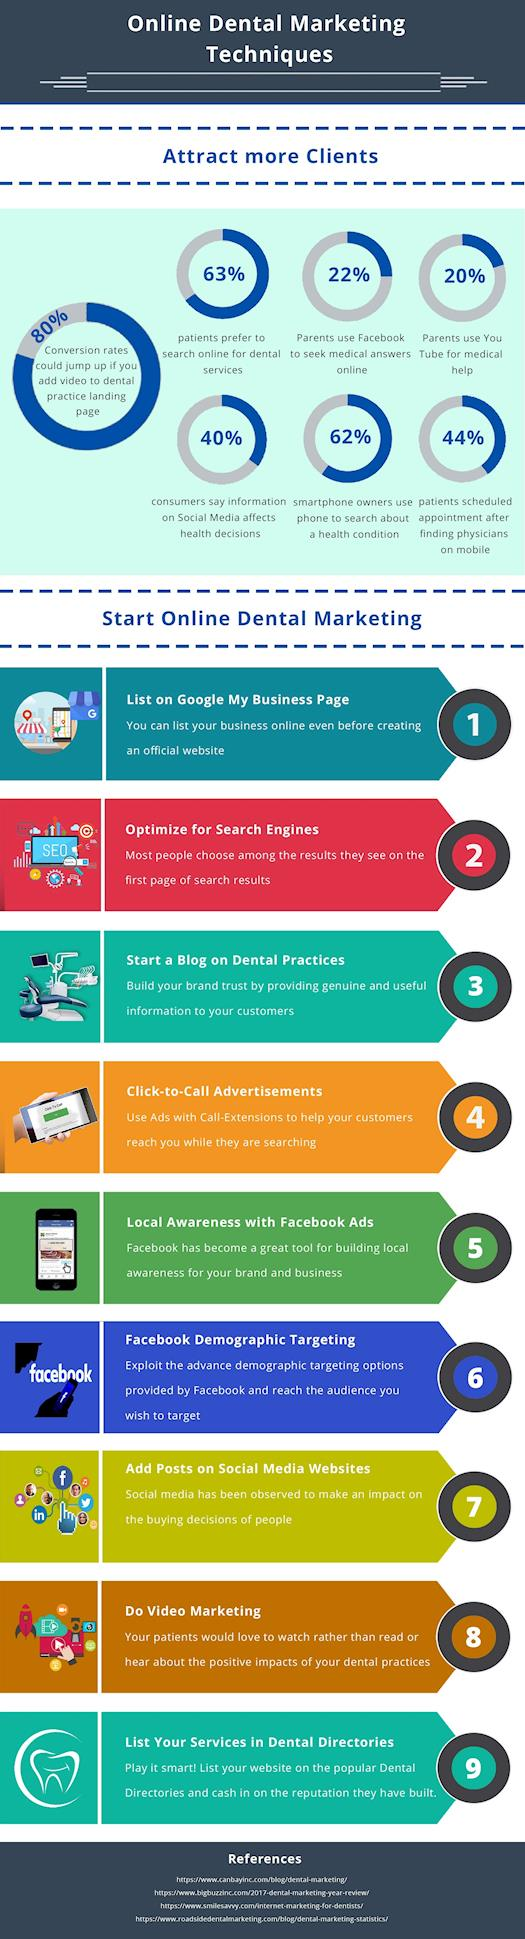 Online Dental Marketing Techniques